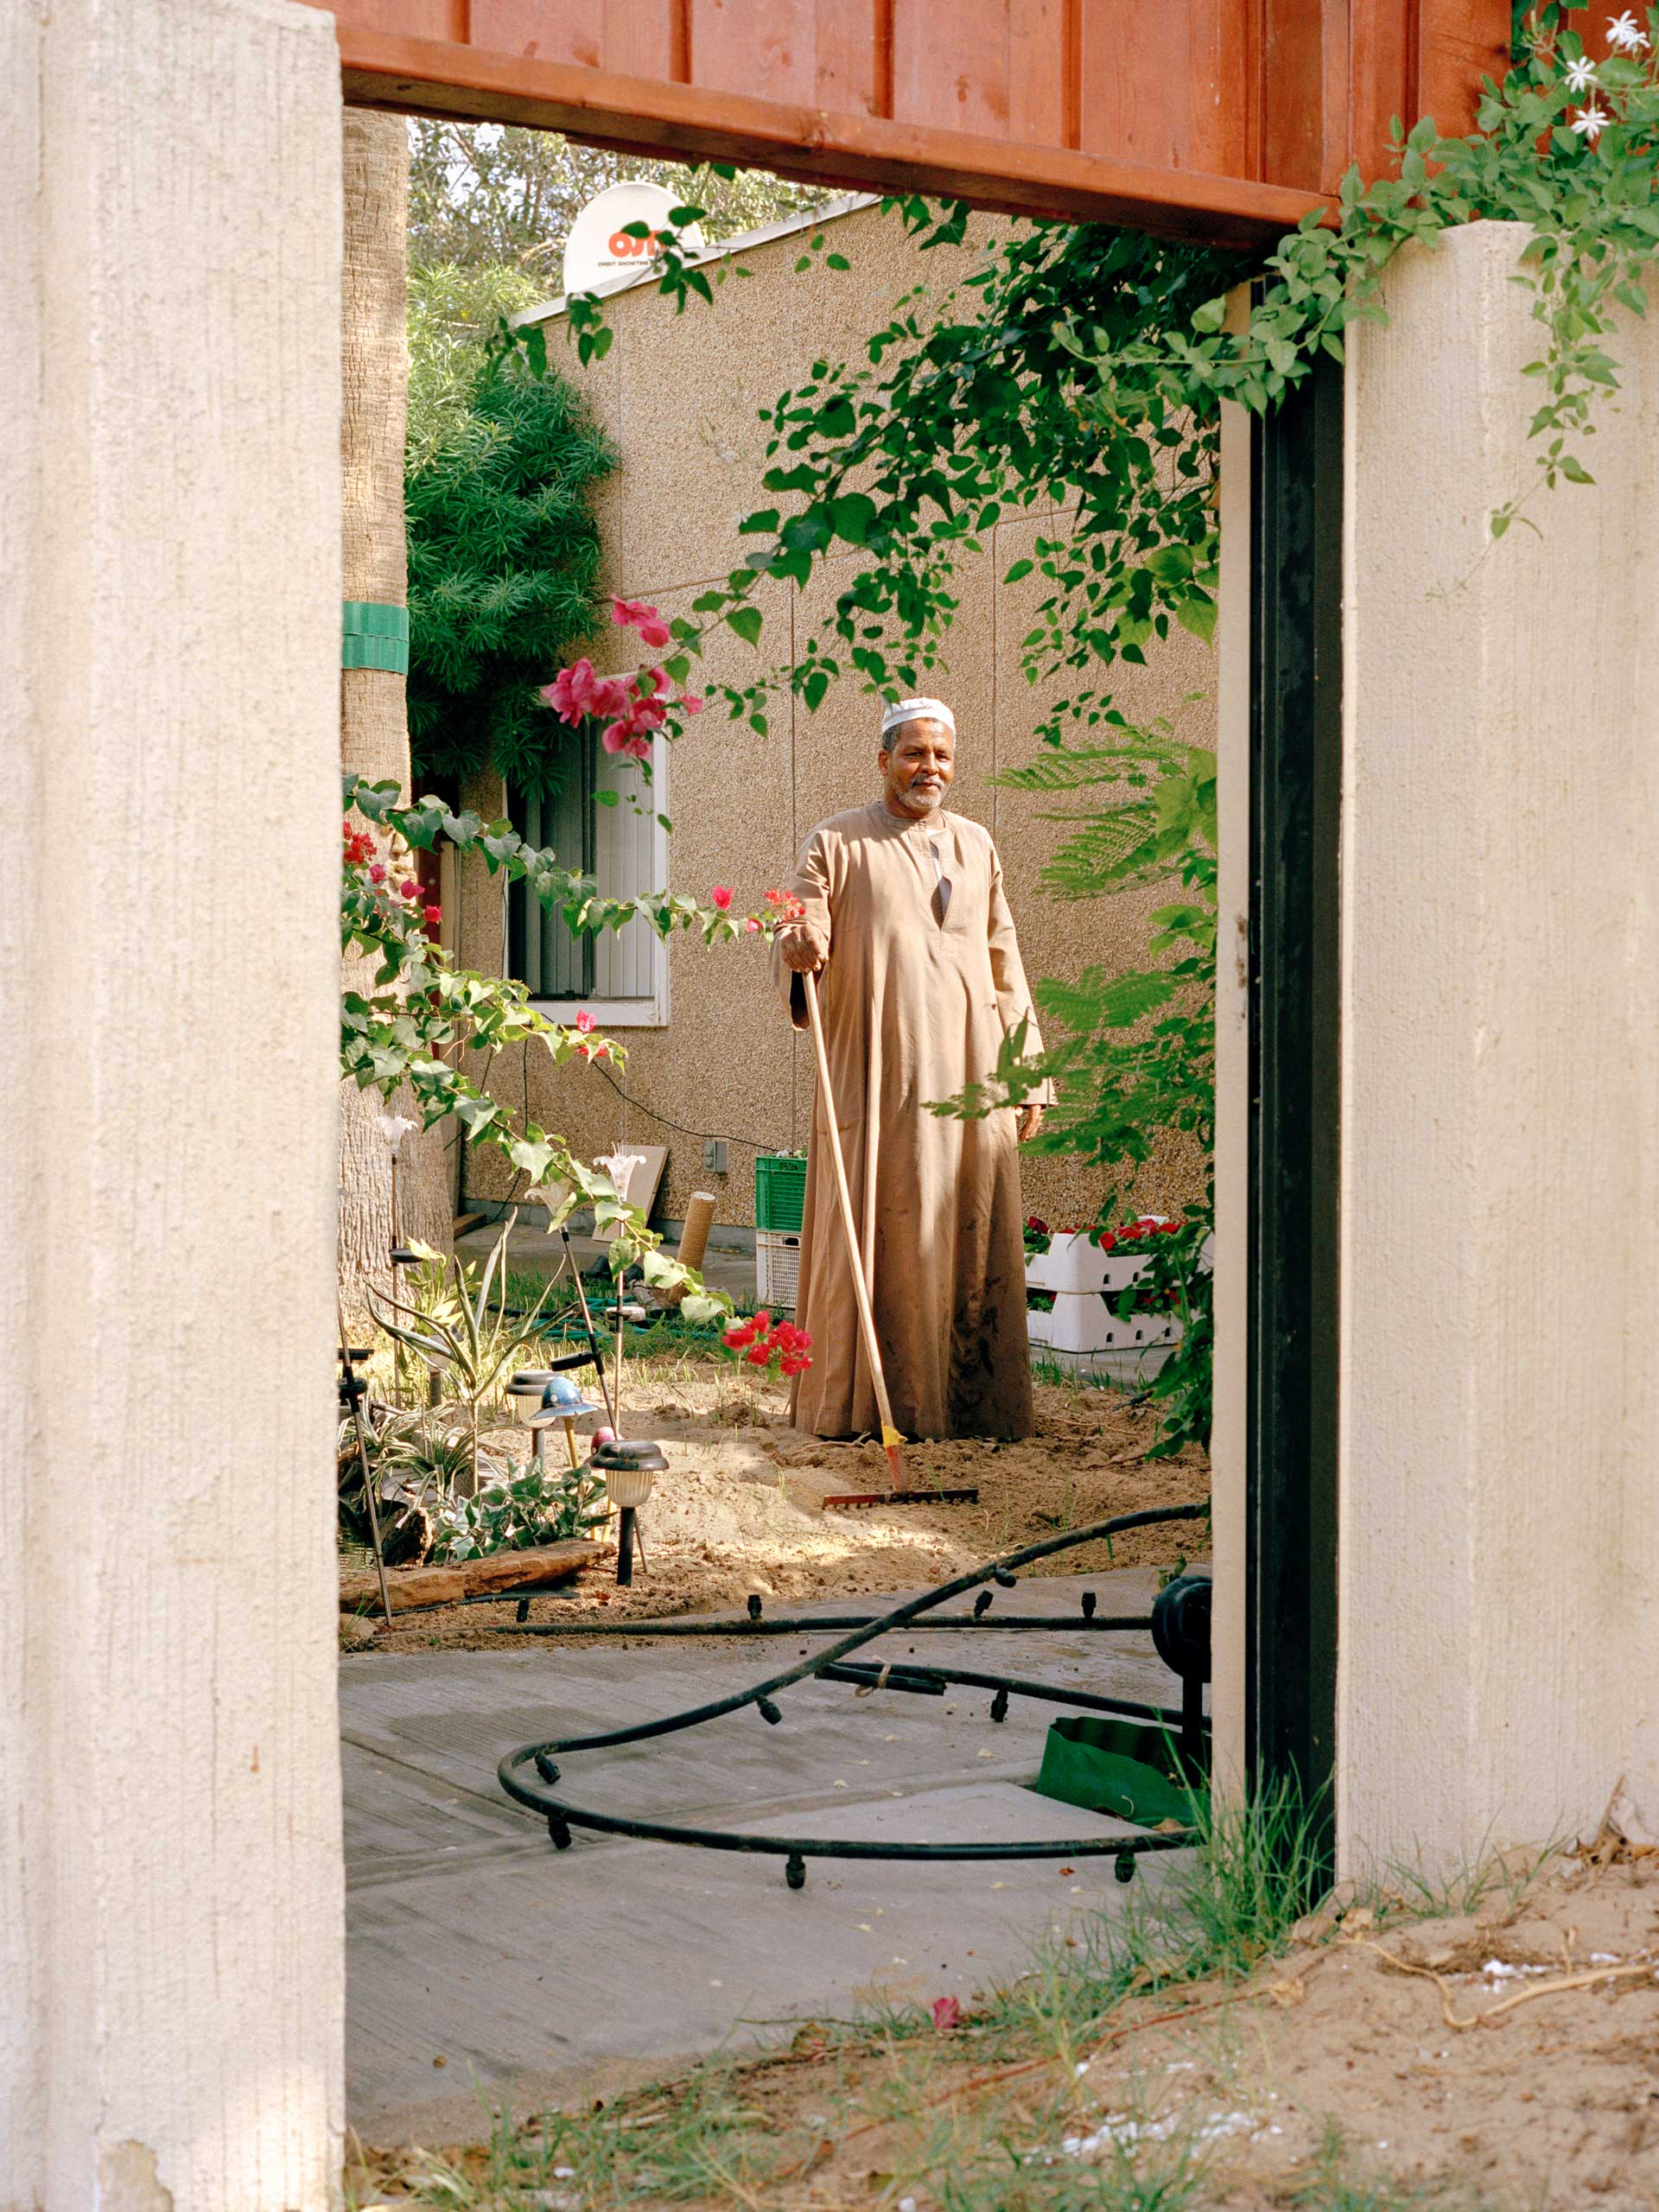 A gardner works in the backyard at a home in Dhahran.